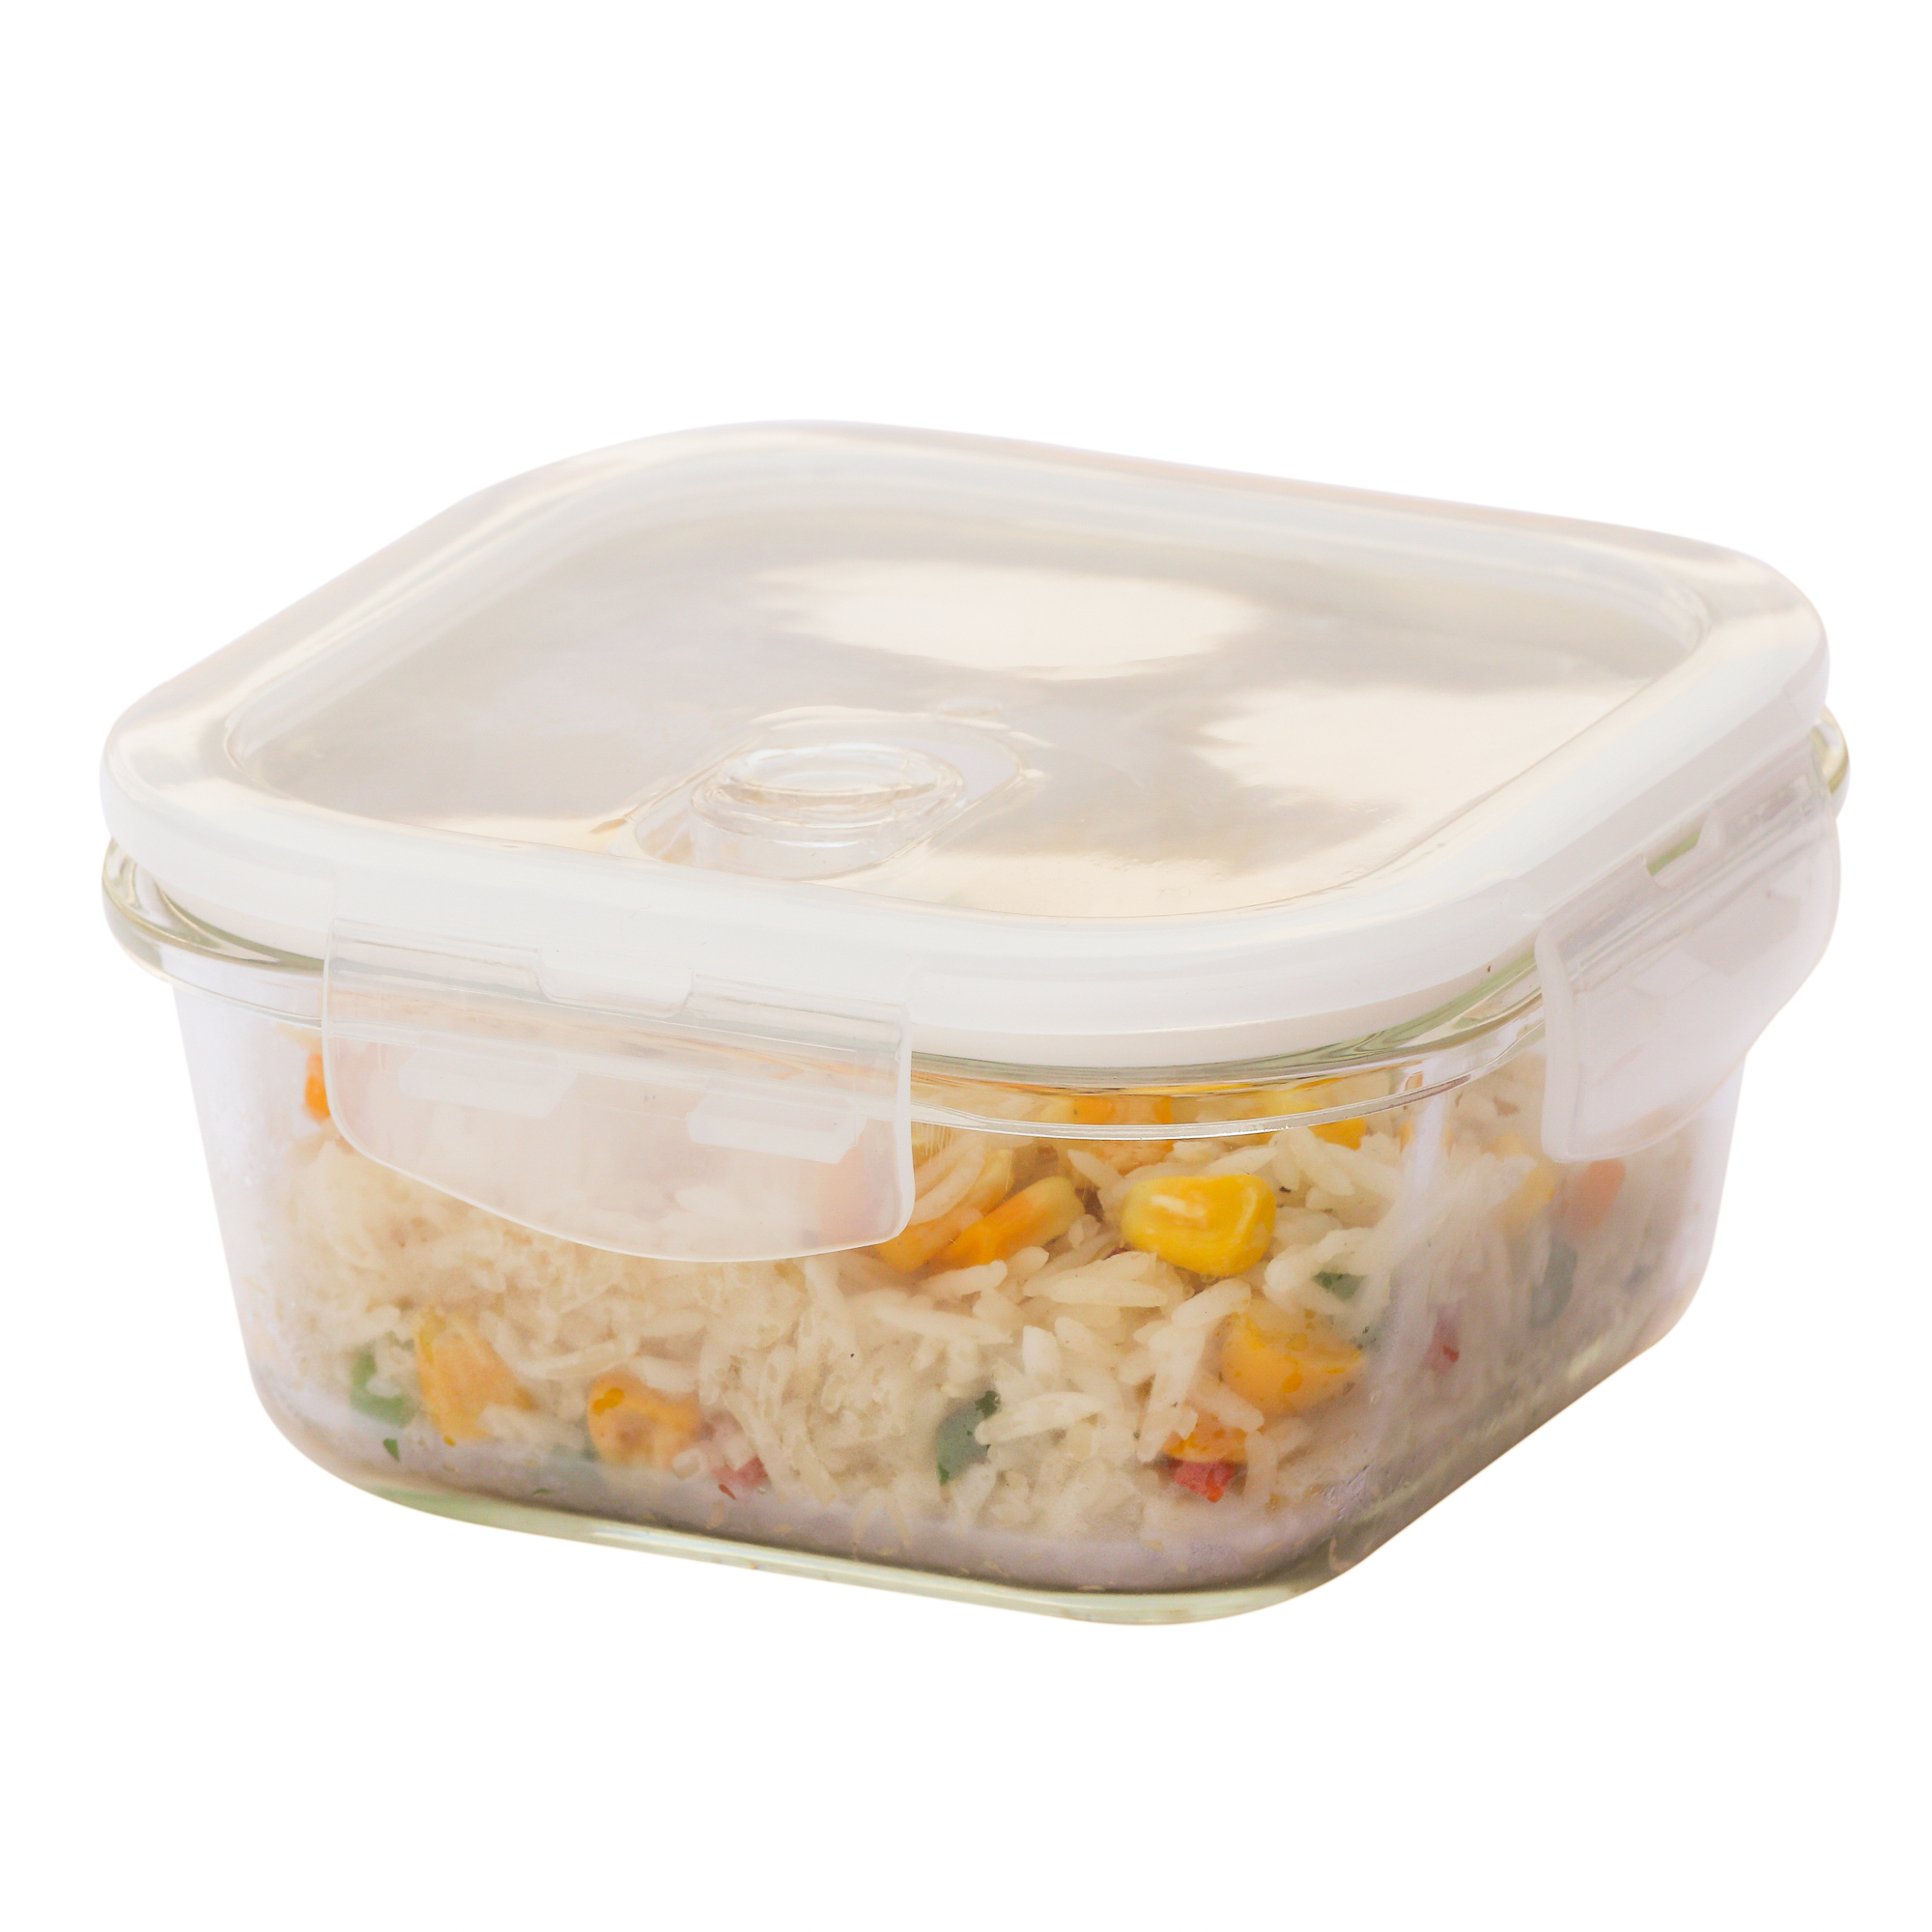 Borosilicate Glass Square Container with Air Vent Lid, 800 ML